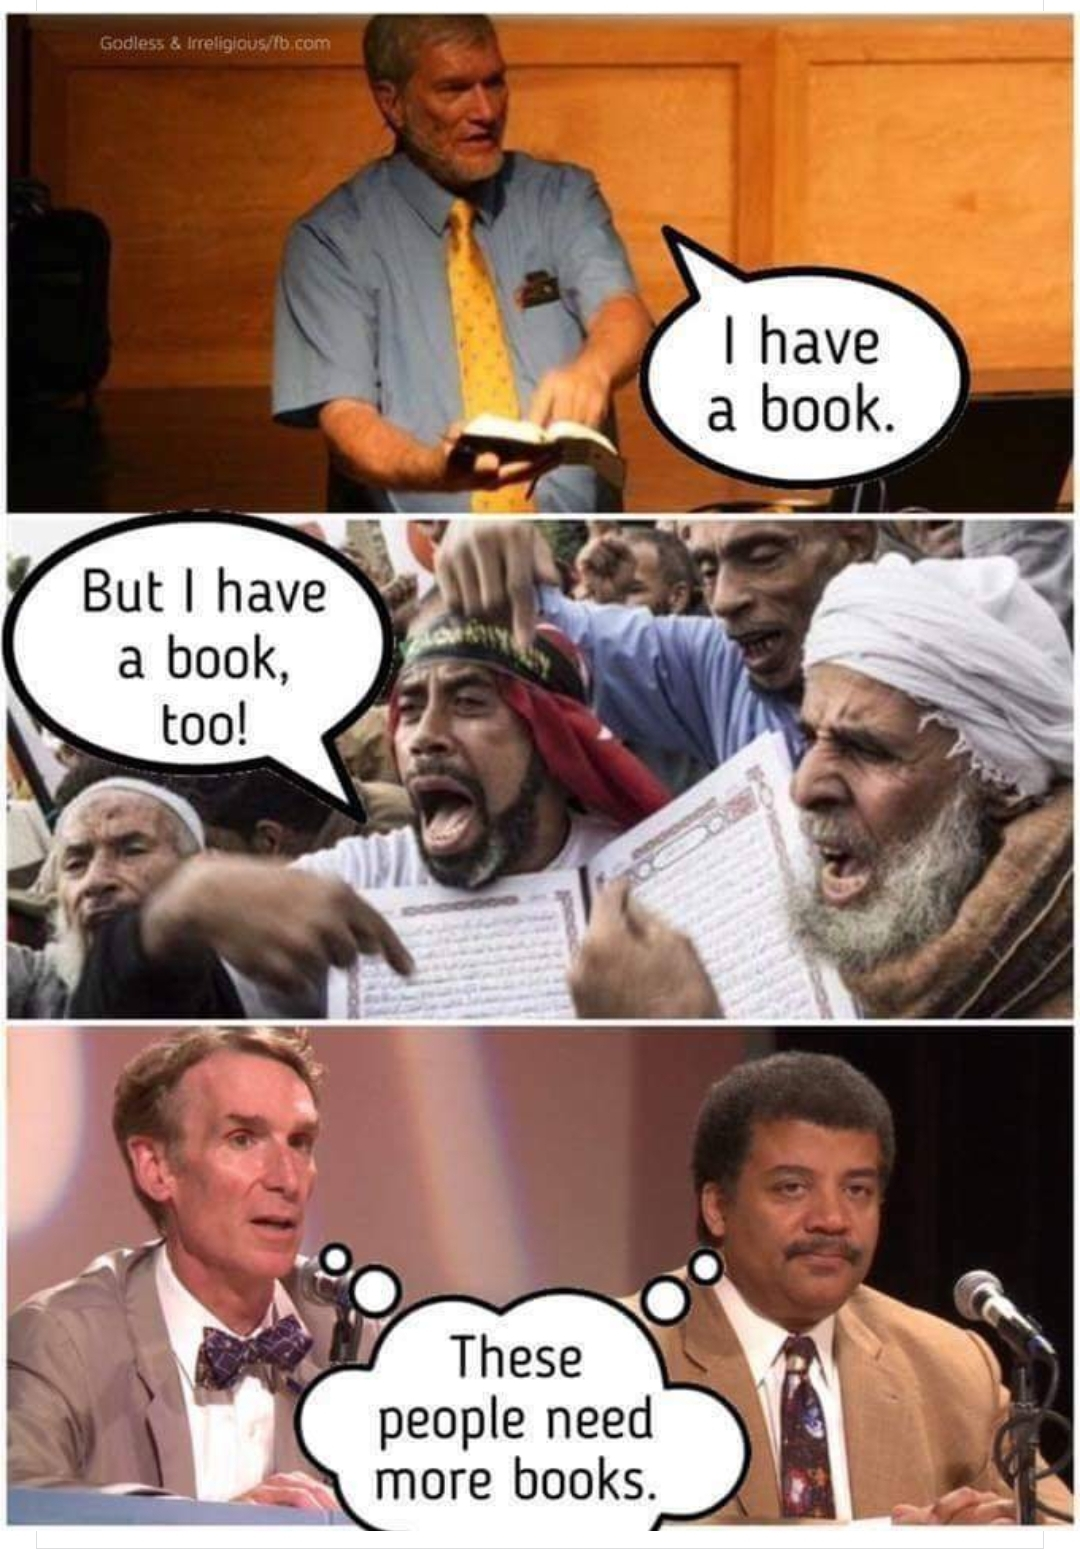 quran bible have book need books angry funny